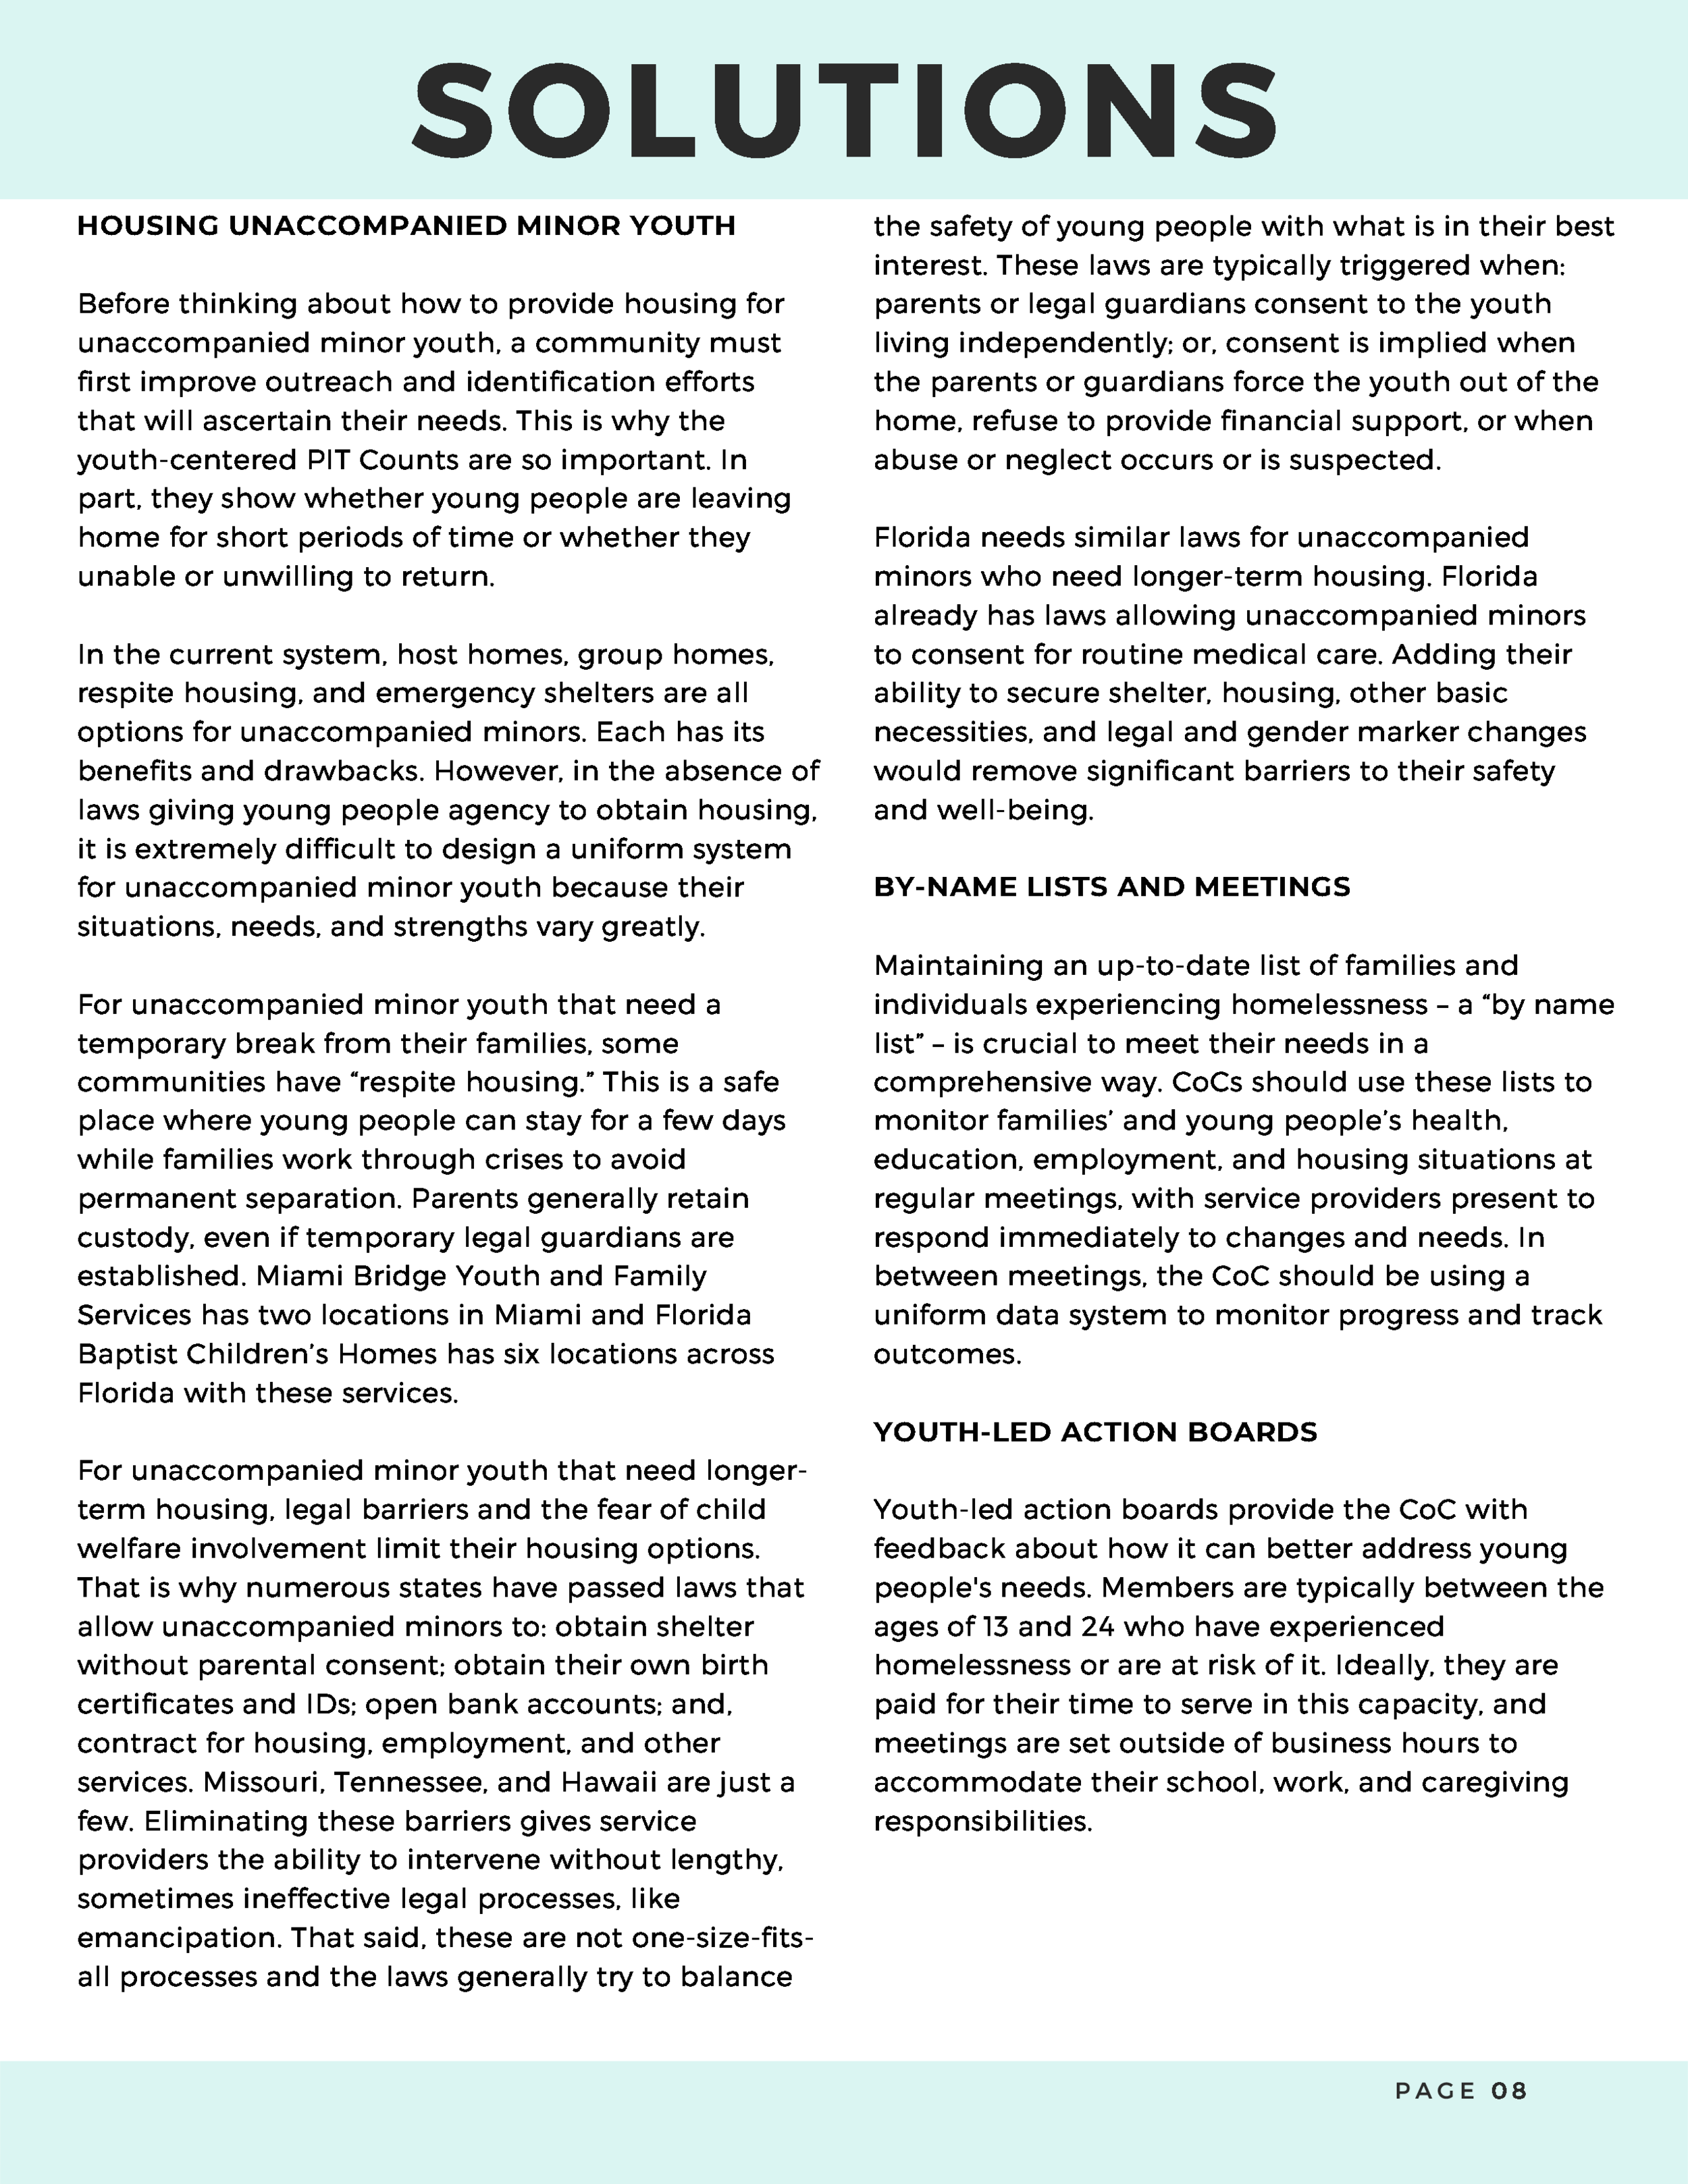 Students Experiencing Homelessness in Florida - Updates and Solutions - August 2019-9.png